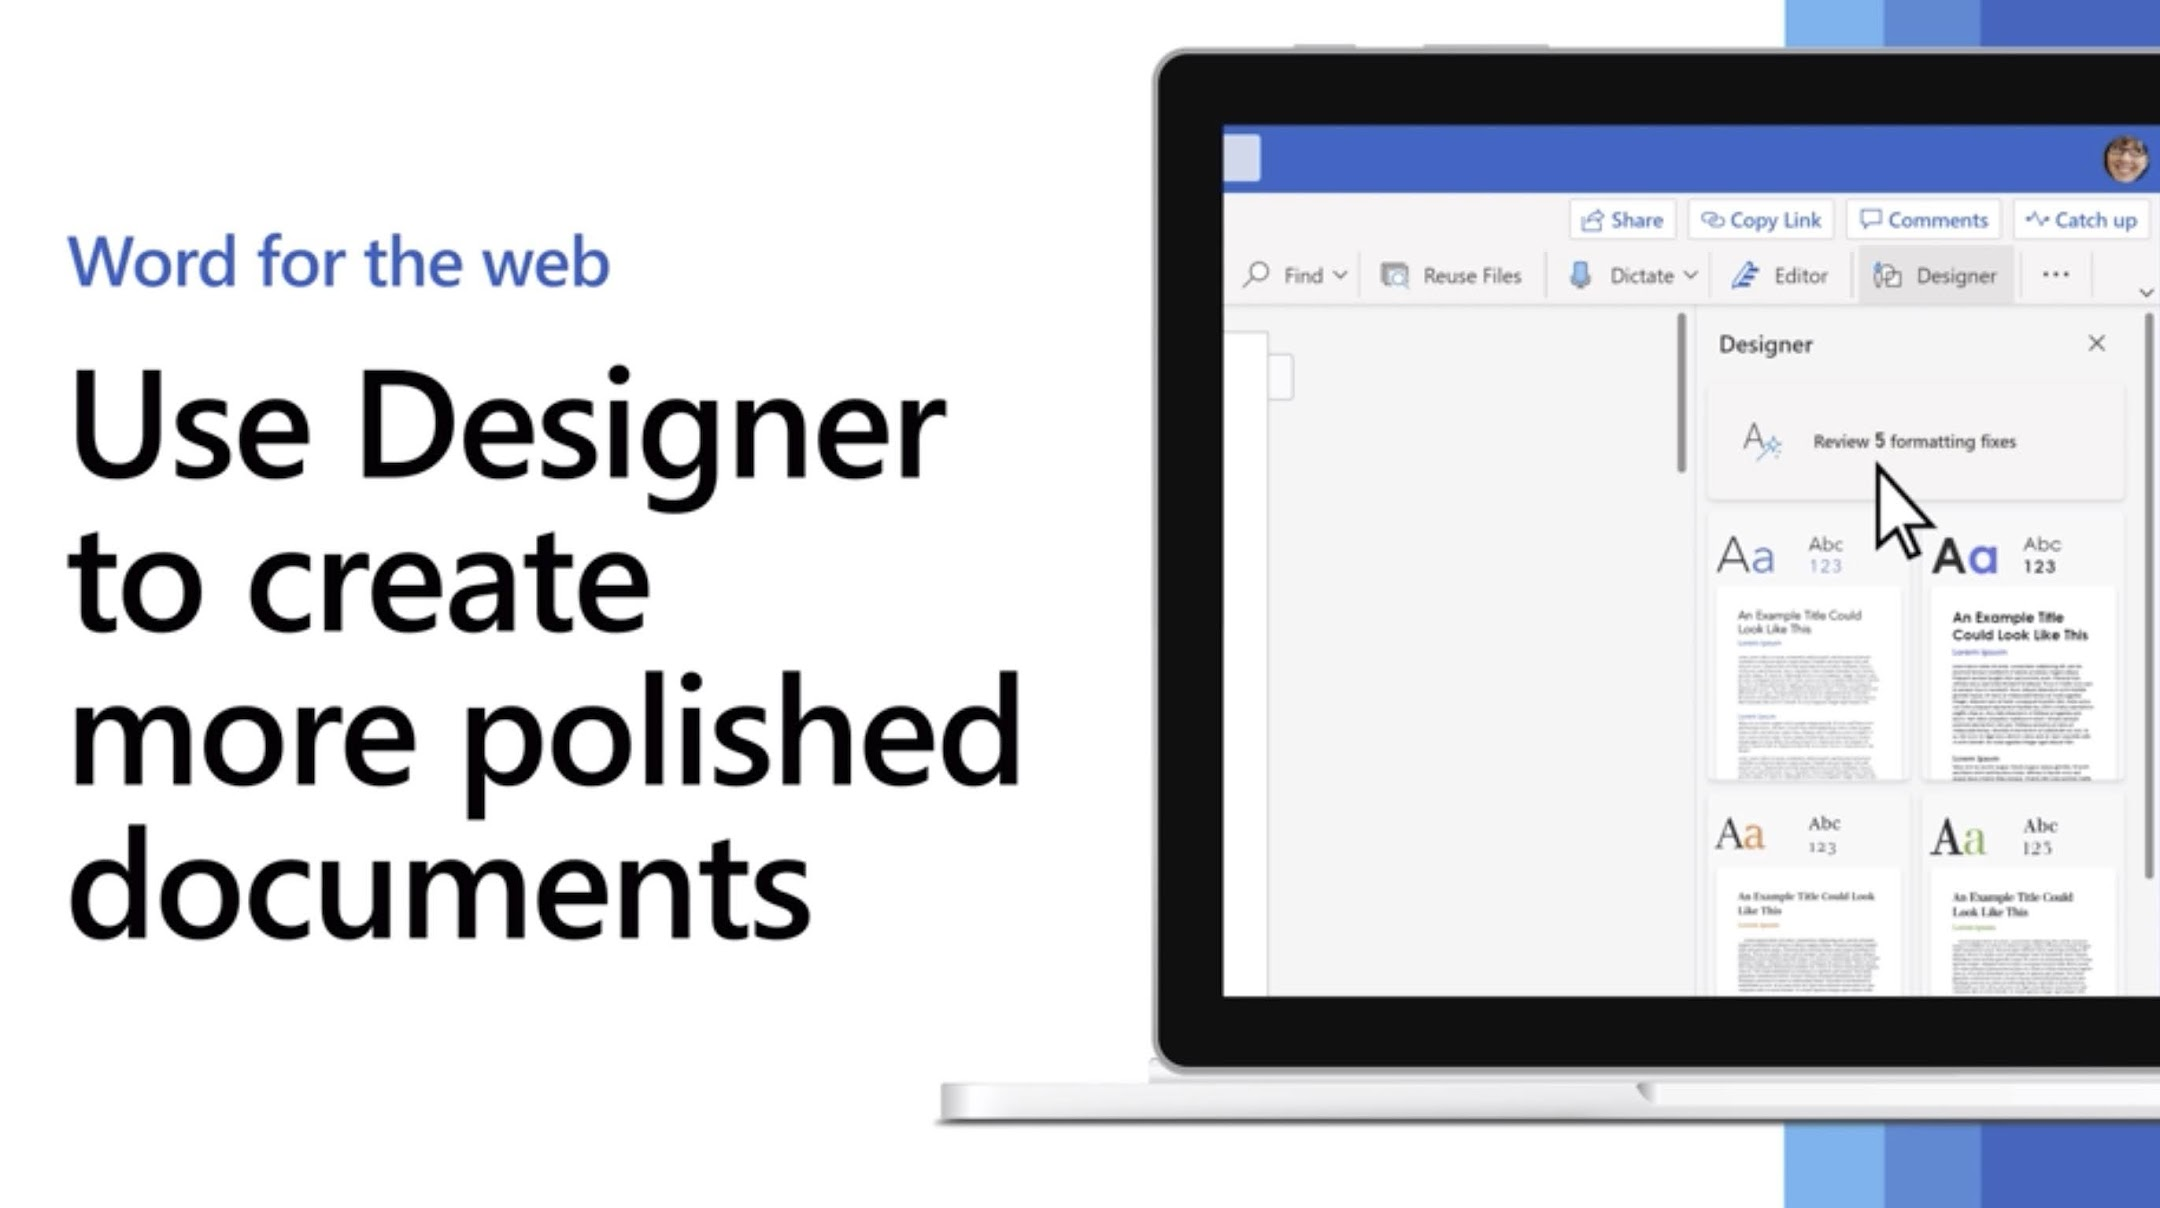 MC223444: Introducing Designer in Word for Web